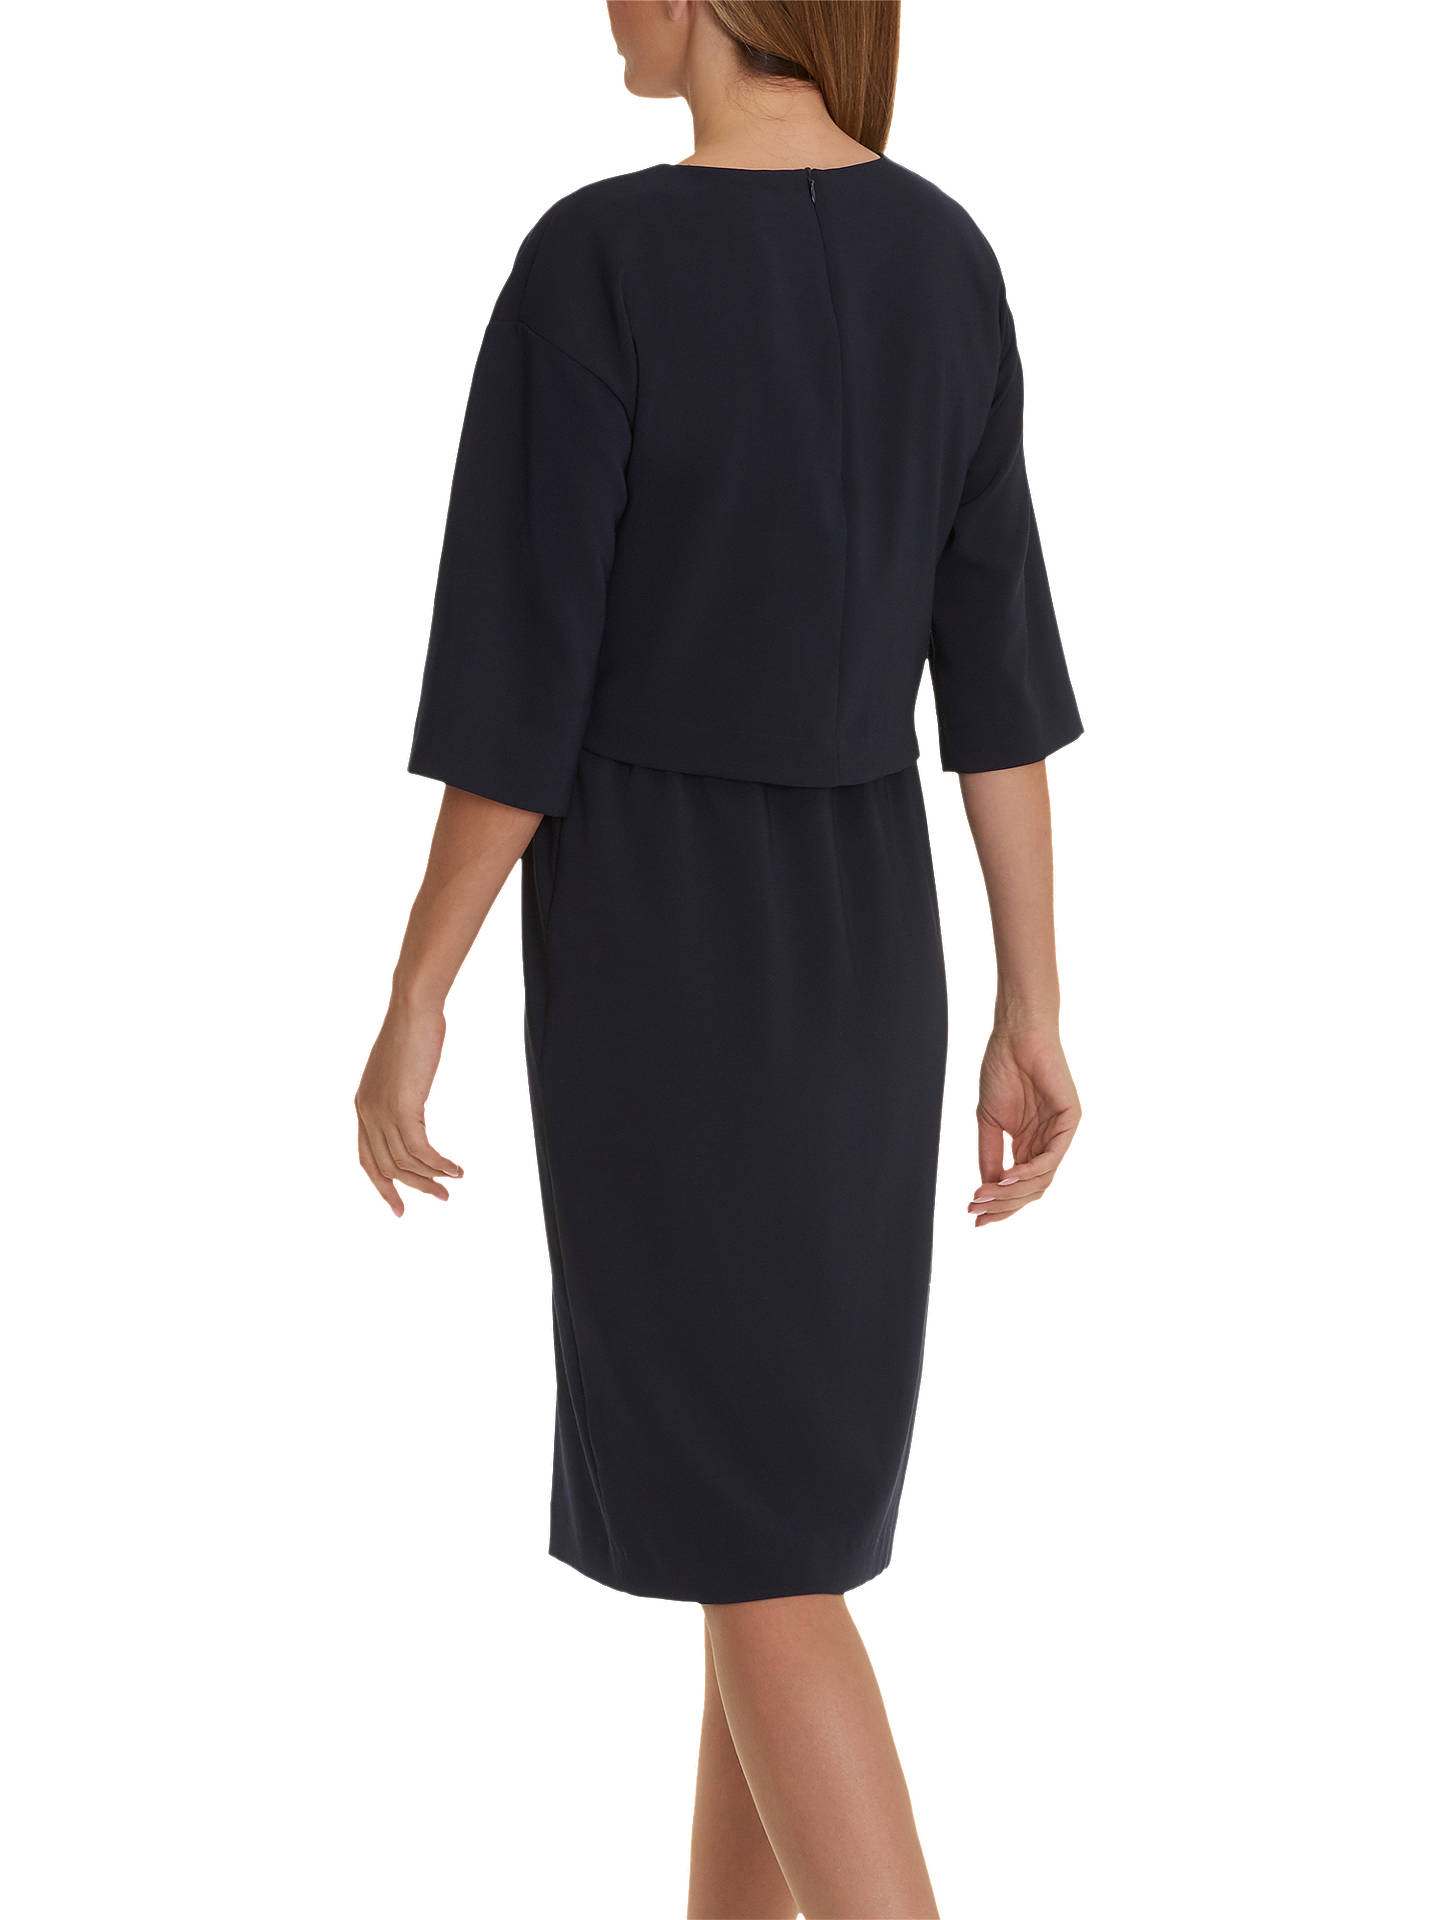 BuyBetty & Co. Crepe Layered Dress, Dark Sapphire, 8 Online at johnlewis.com